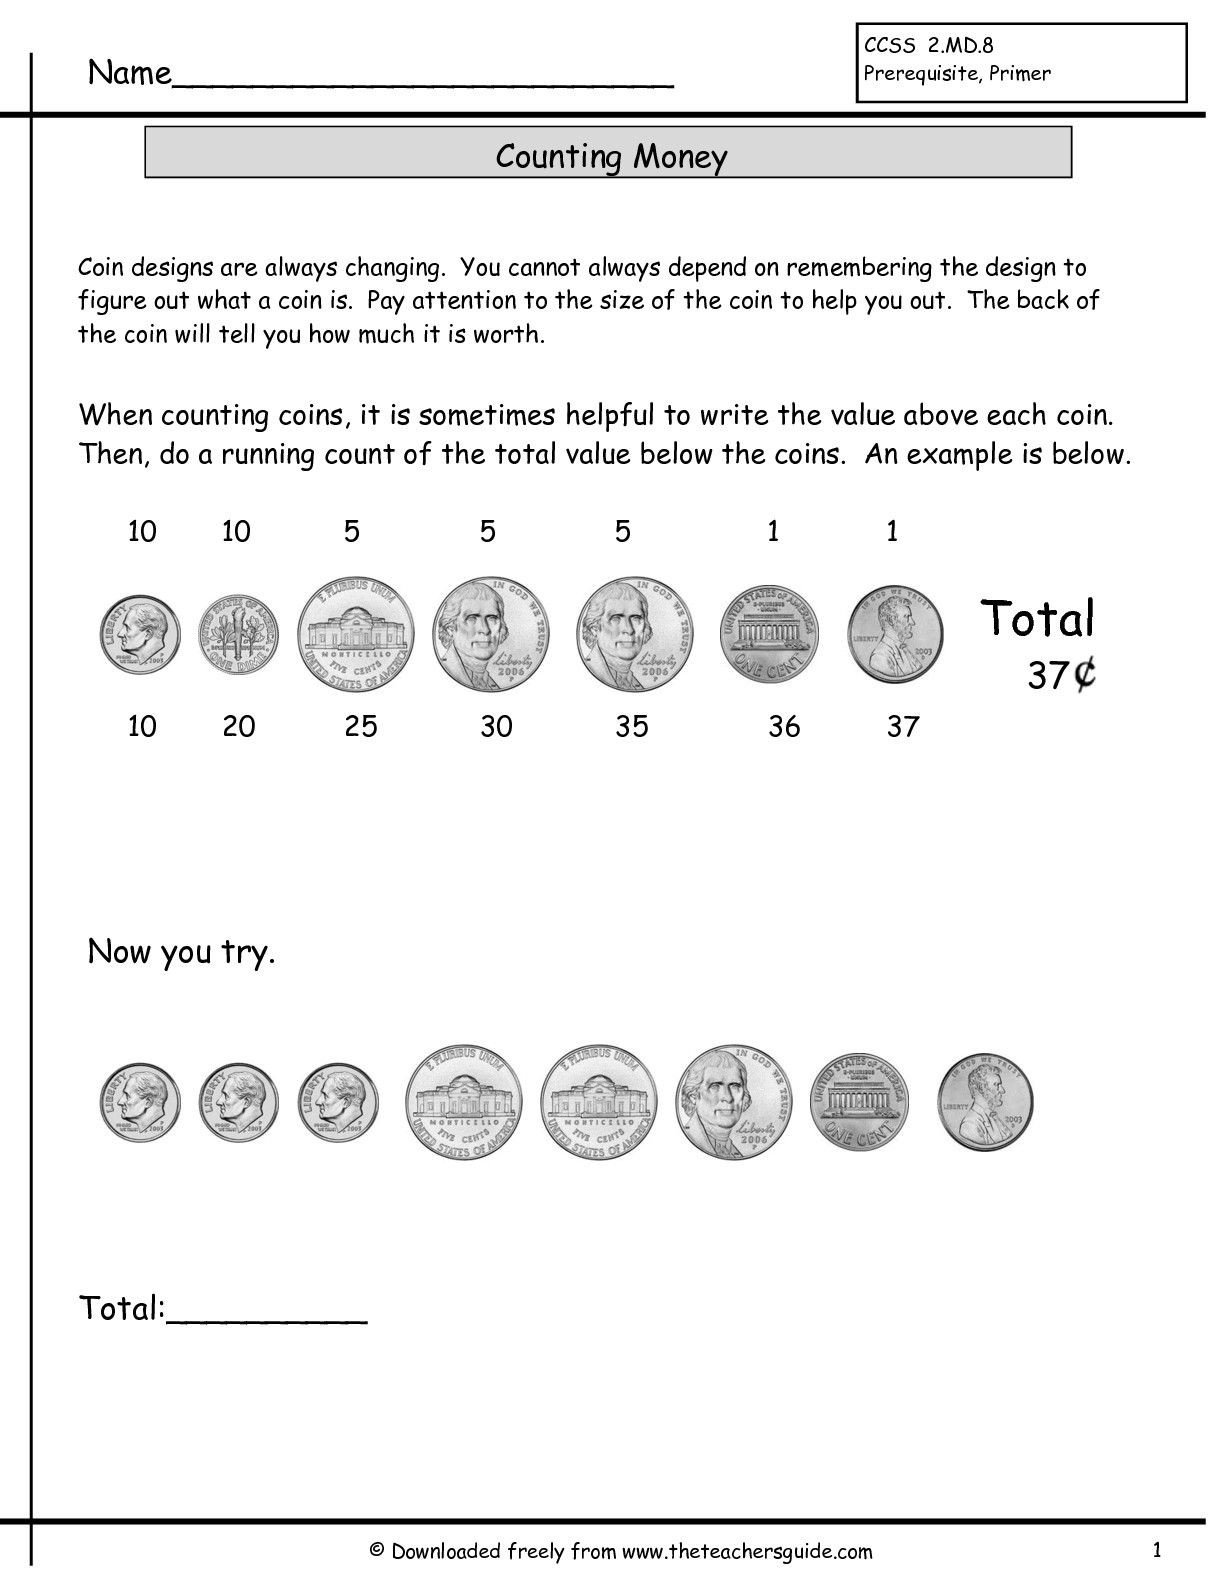 Counting Coins Worksheets First Grade Counting Coins Practice Worksheet